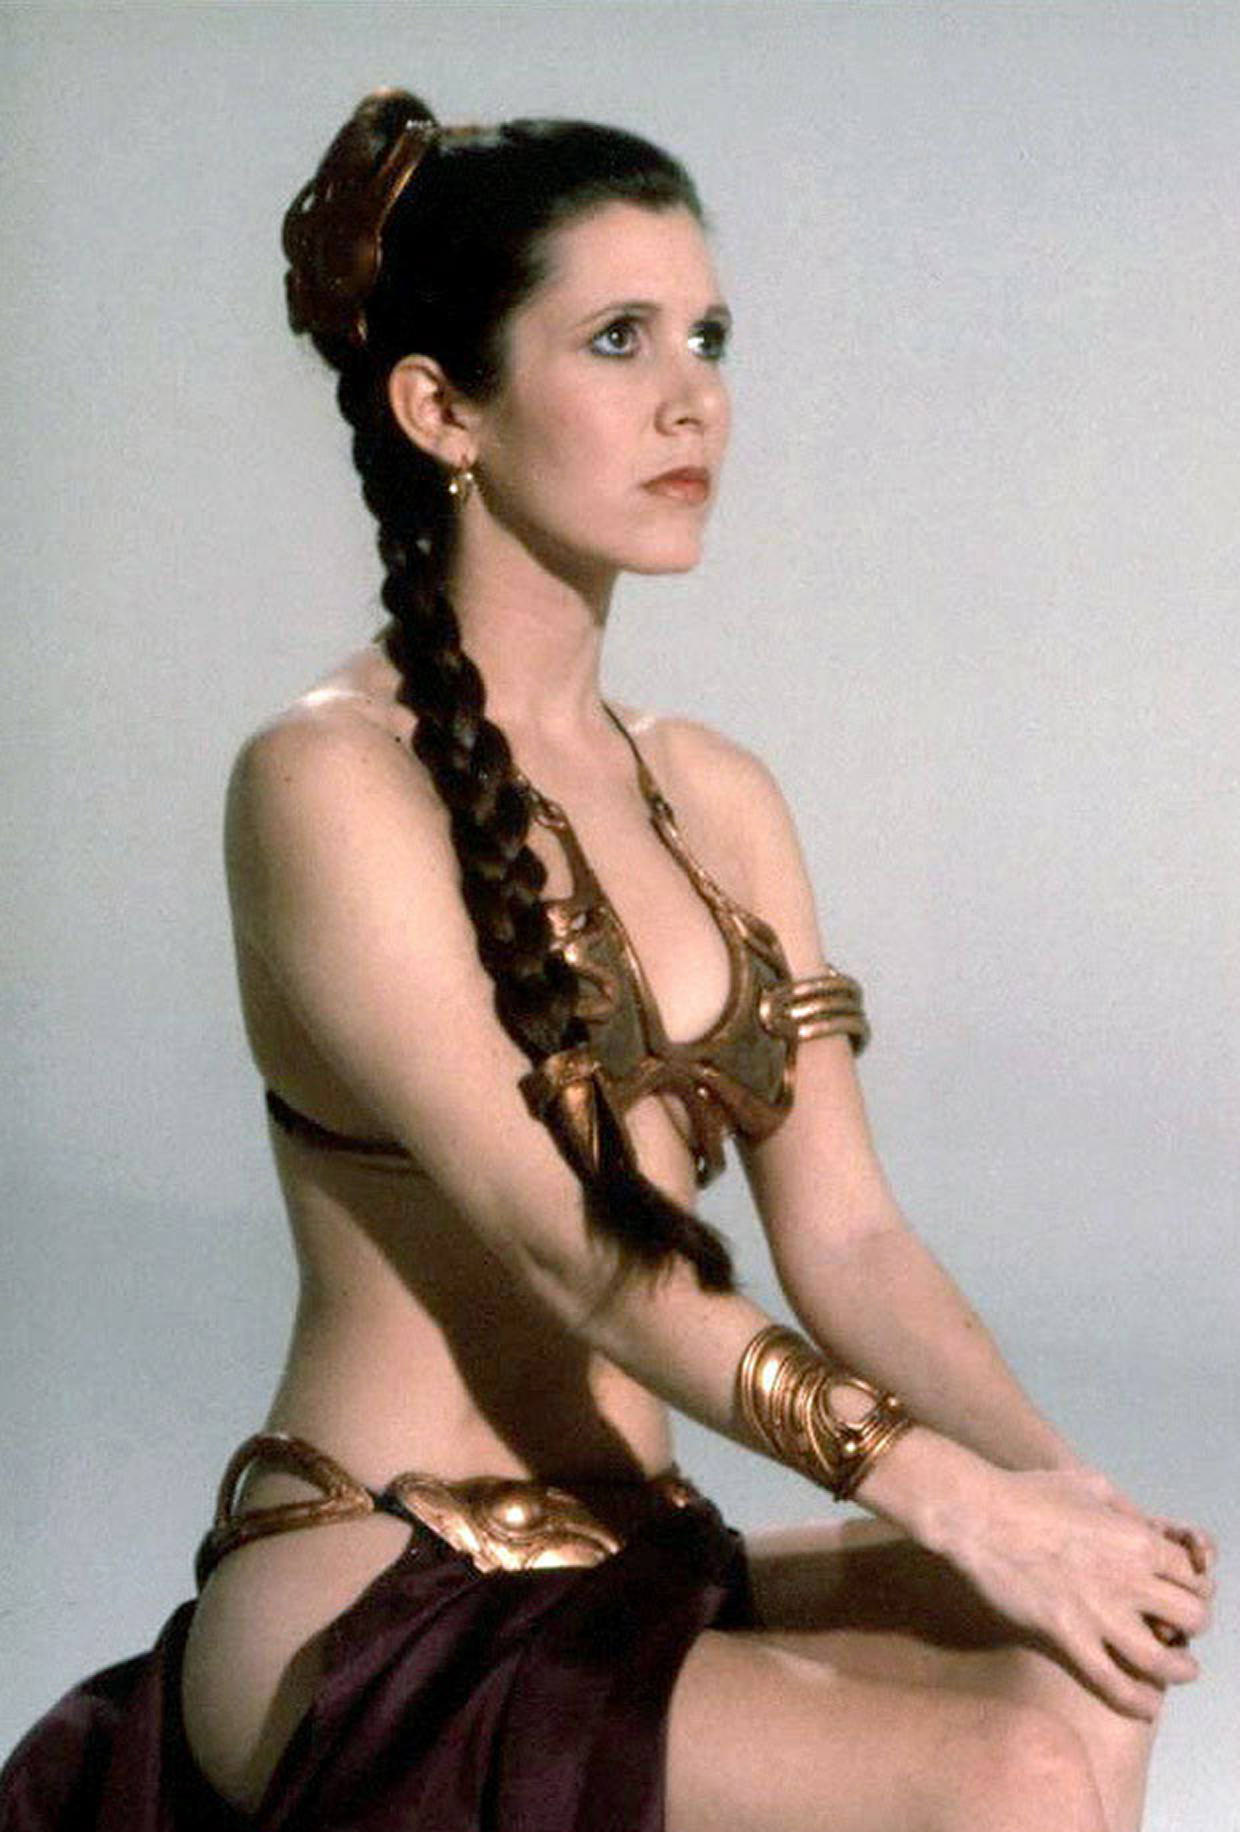 (not to archive) Princess Leia (Carrie Fisher)